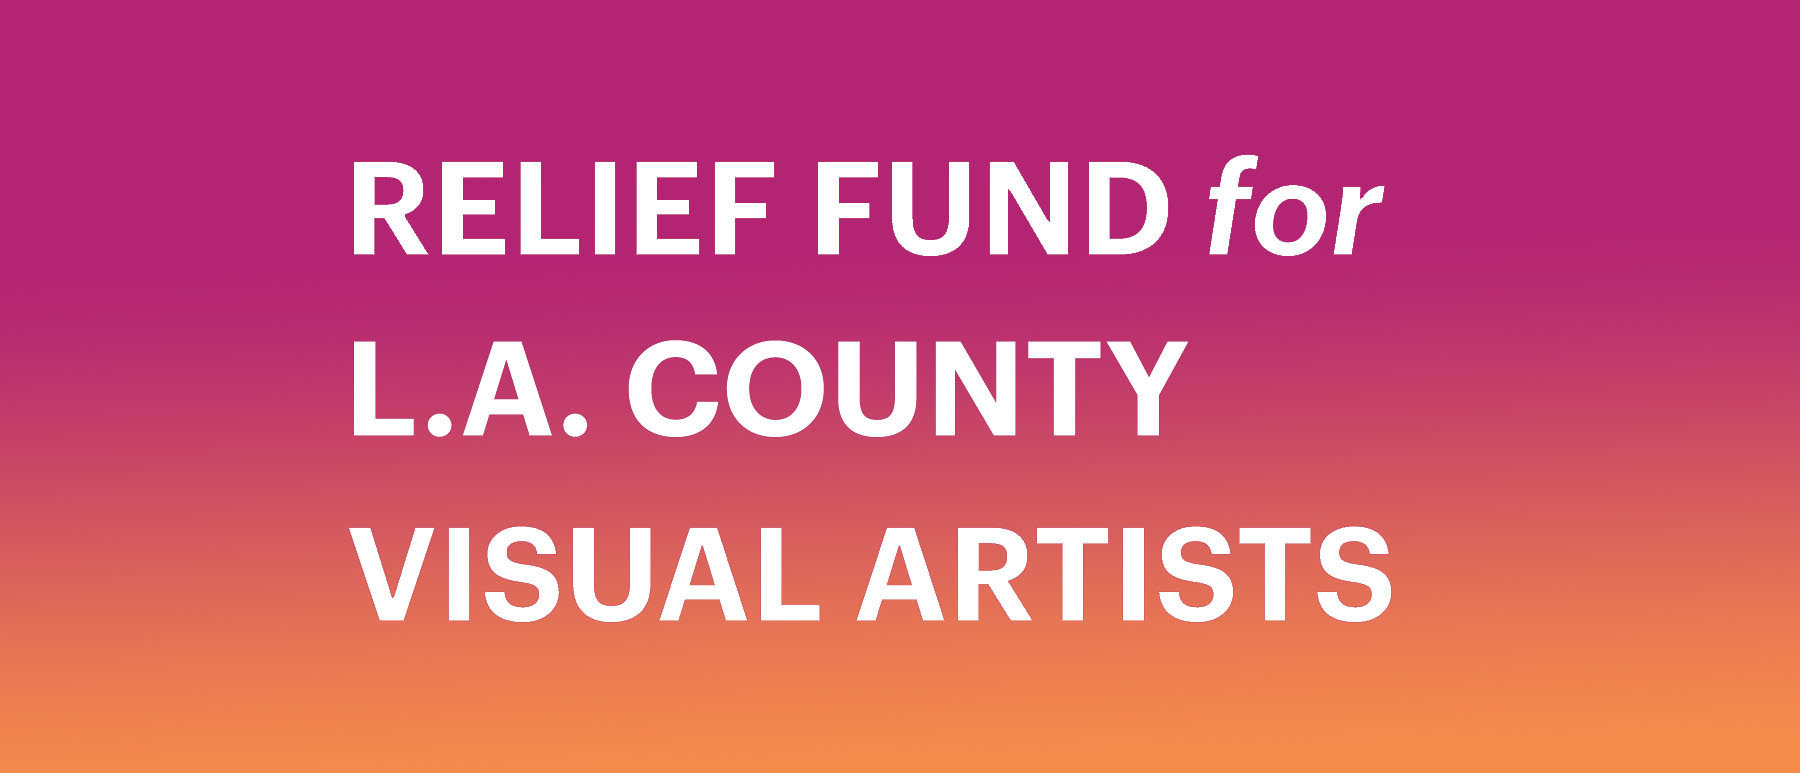 Banner with text that says relief fund for LA county visual artists